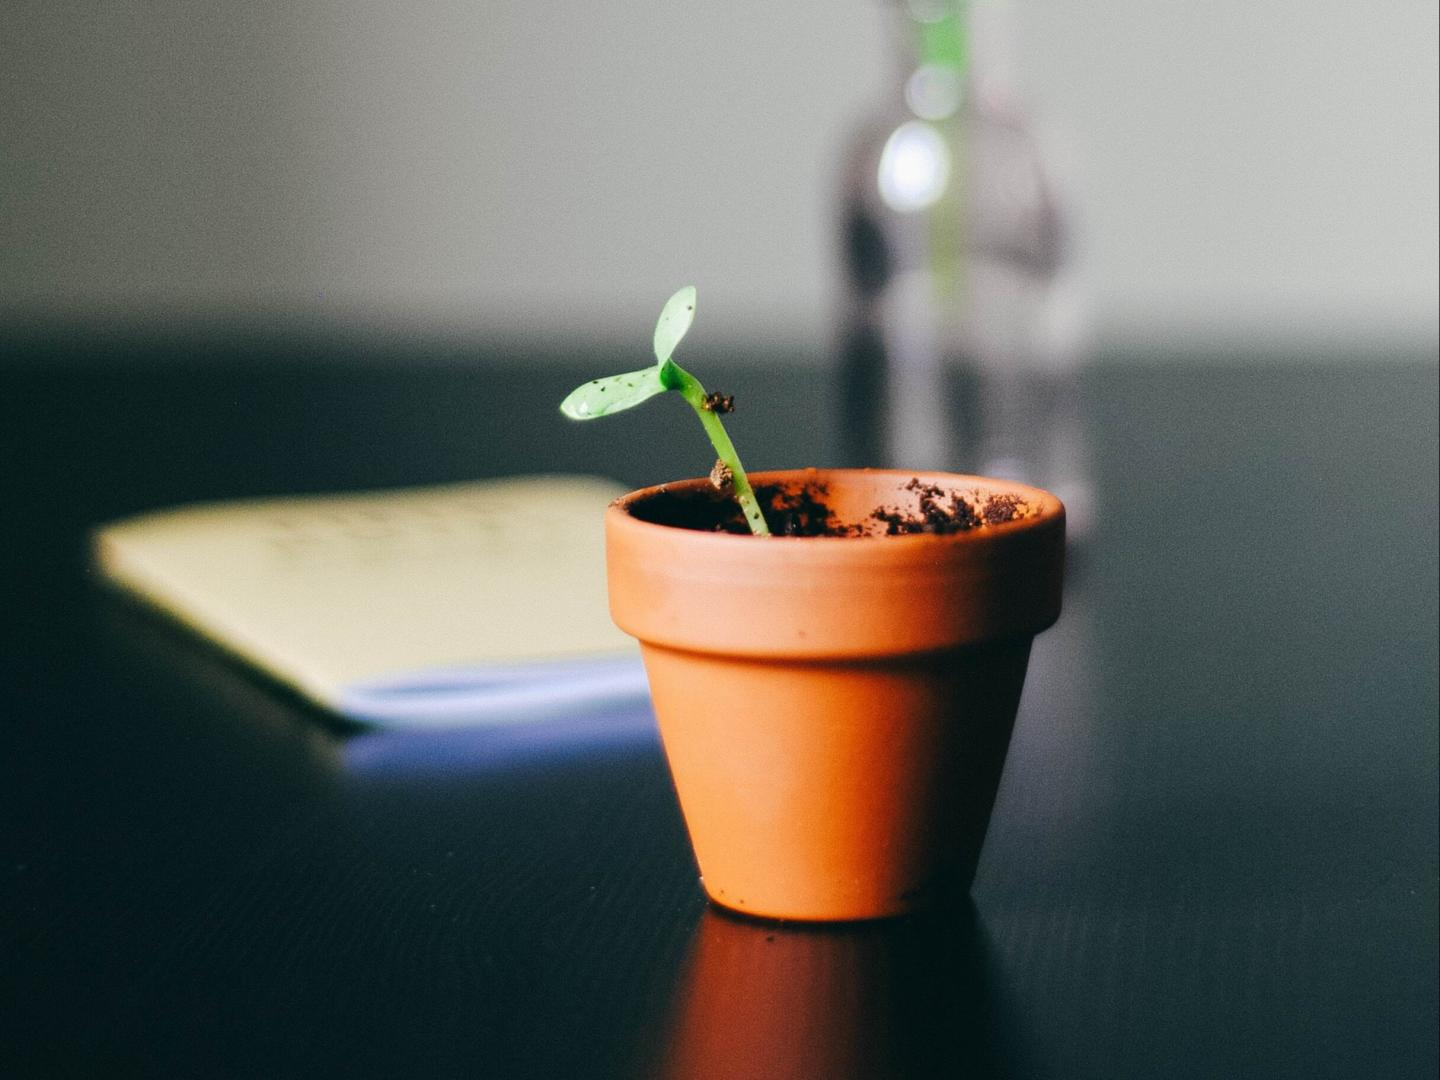 image of a potted plant beginning to sprout